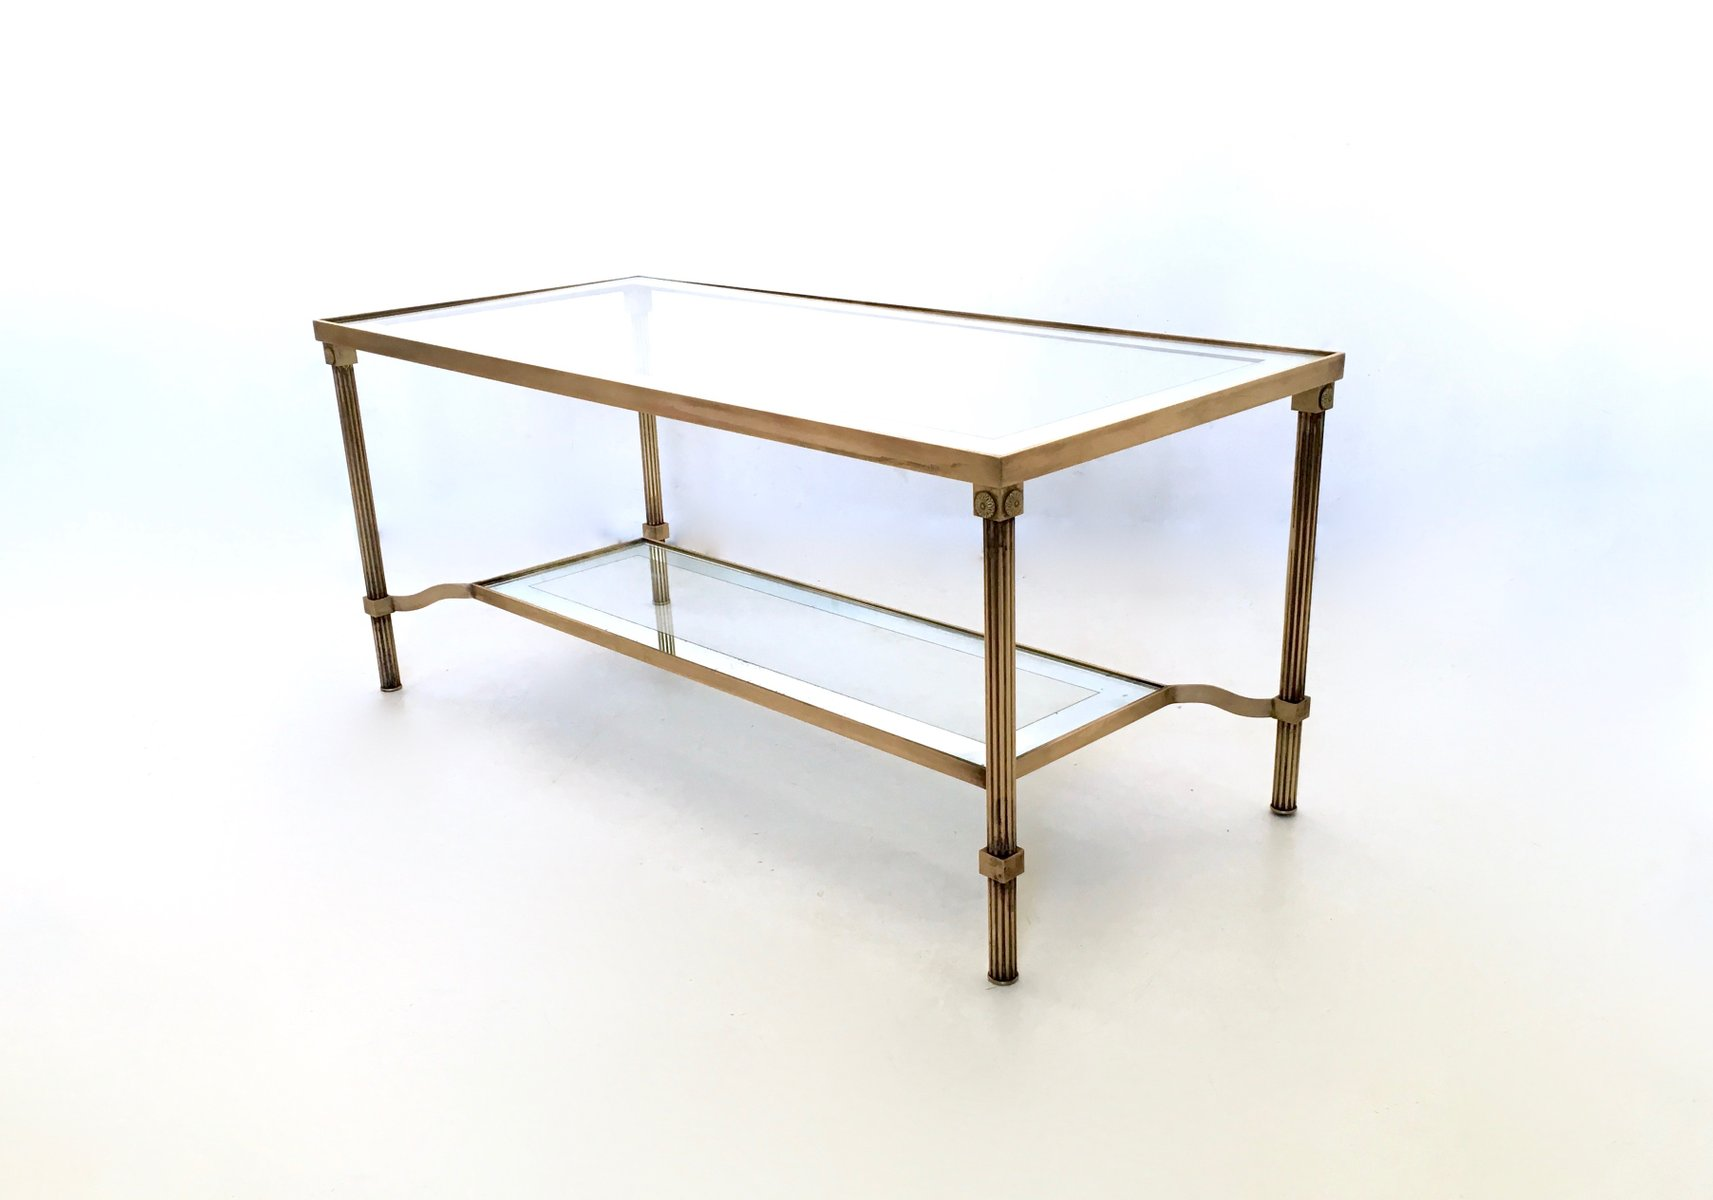 Italian Two Tiered Brass & Glass Coffee Table 1950s for sale at